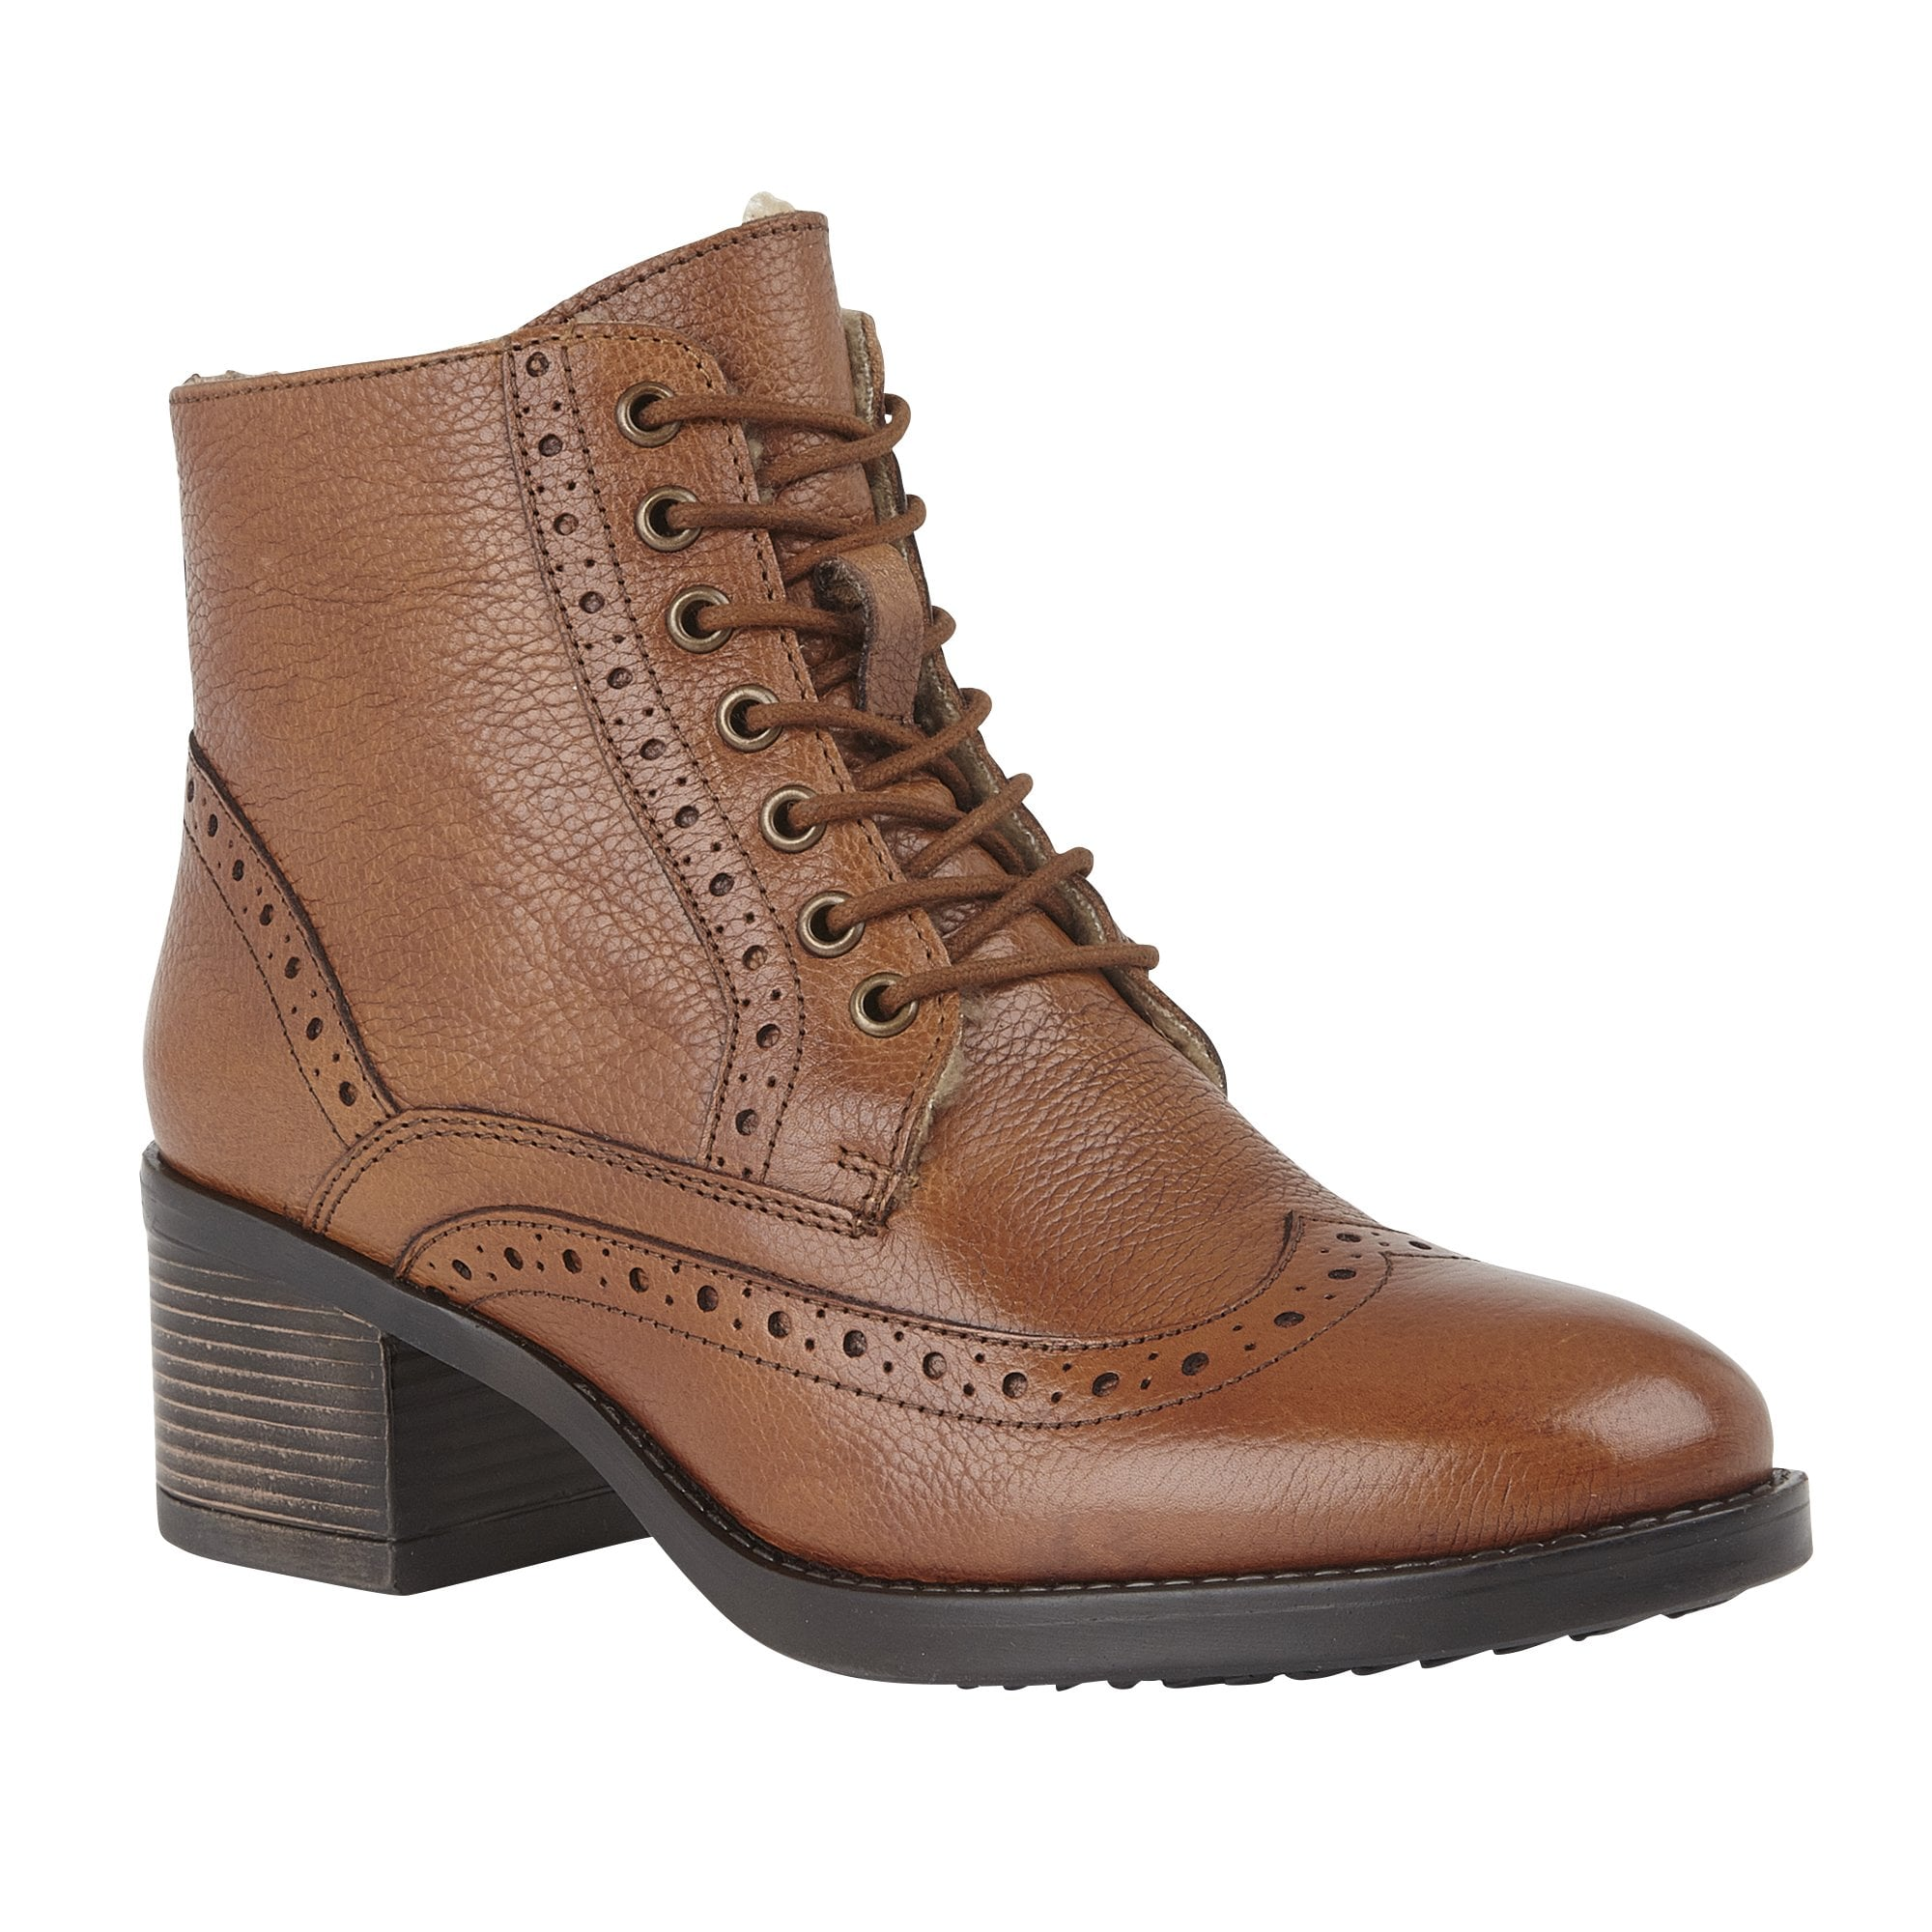 Amira ankle boot in tan leather